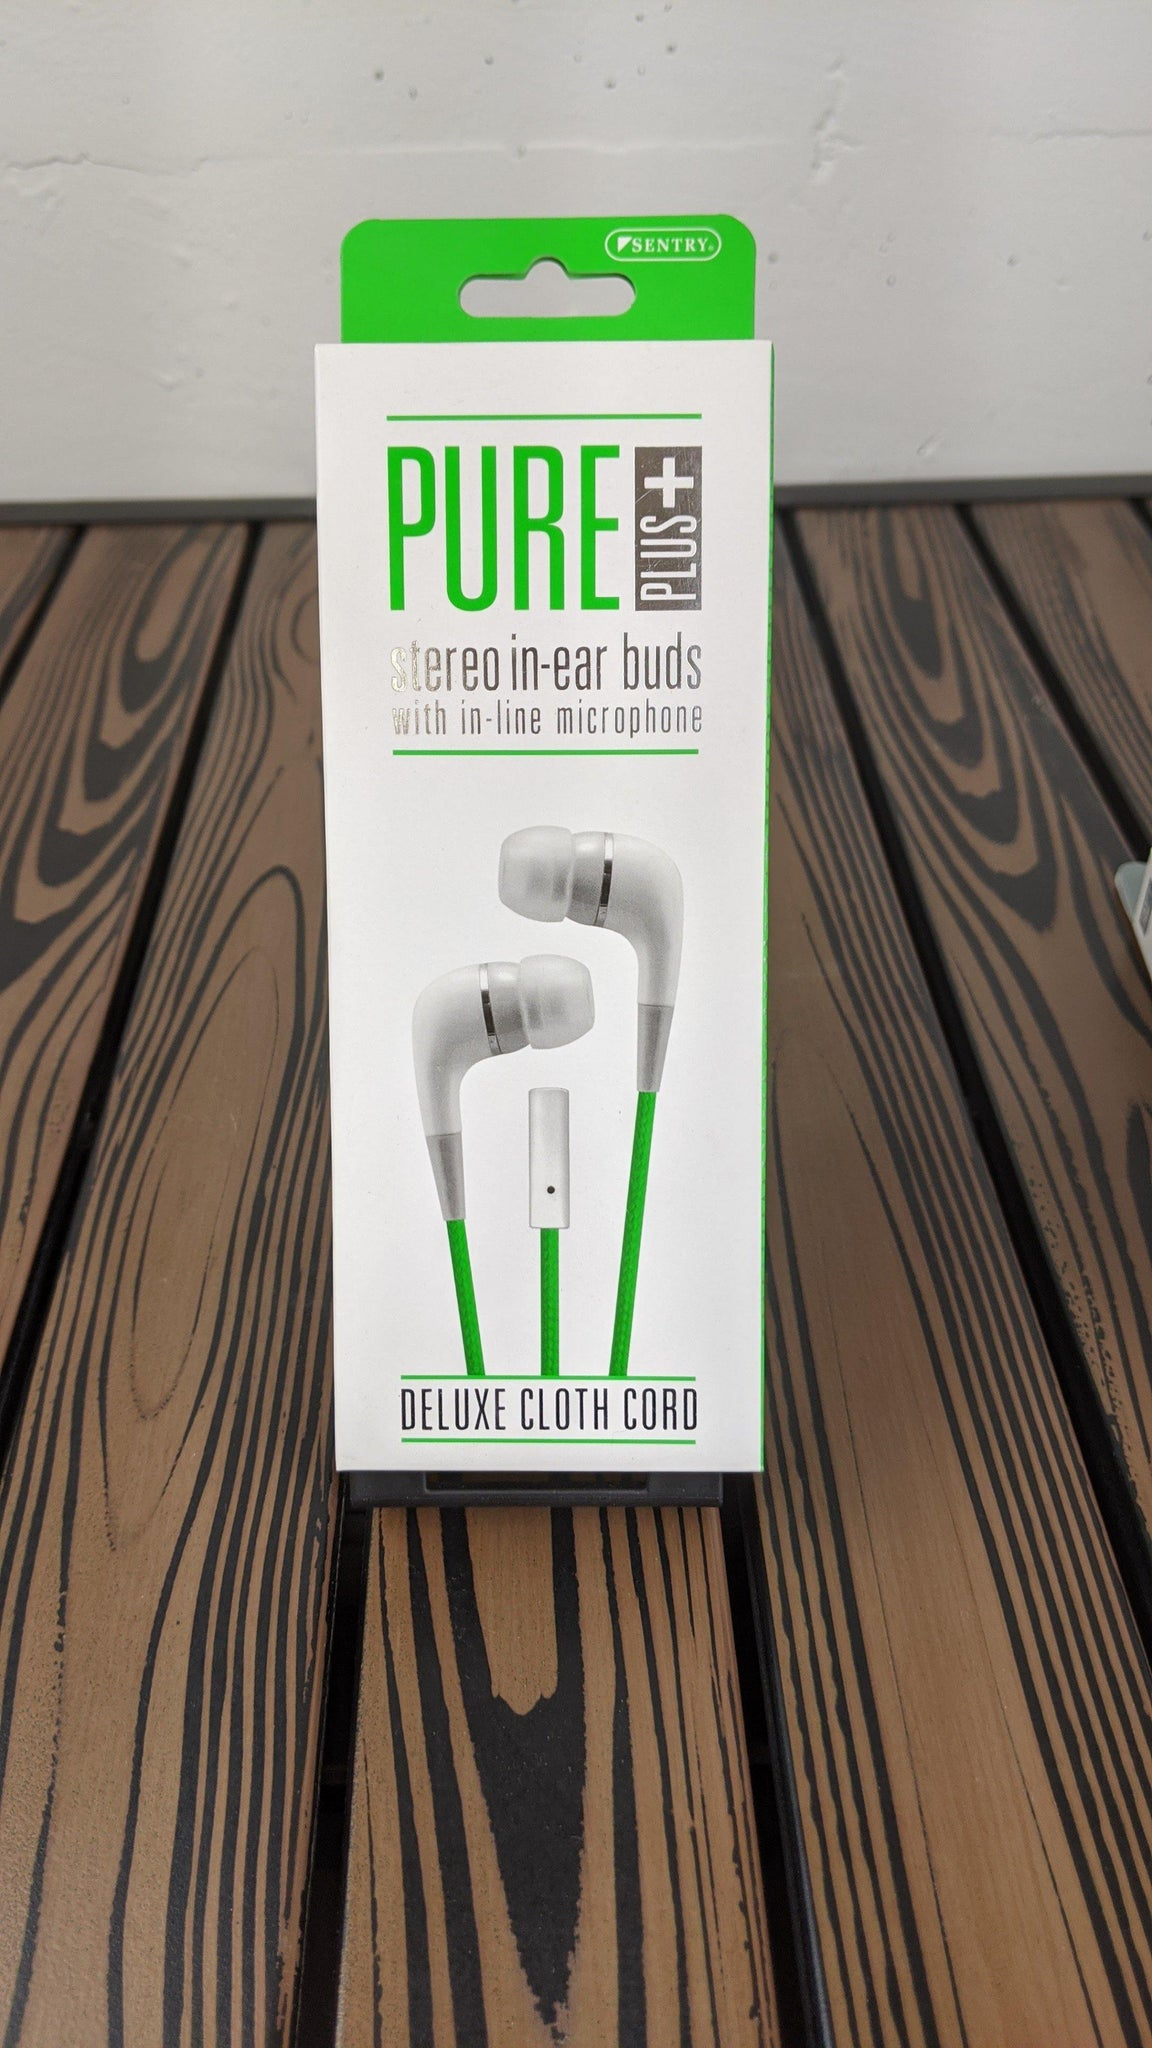 Pure plus earbuds